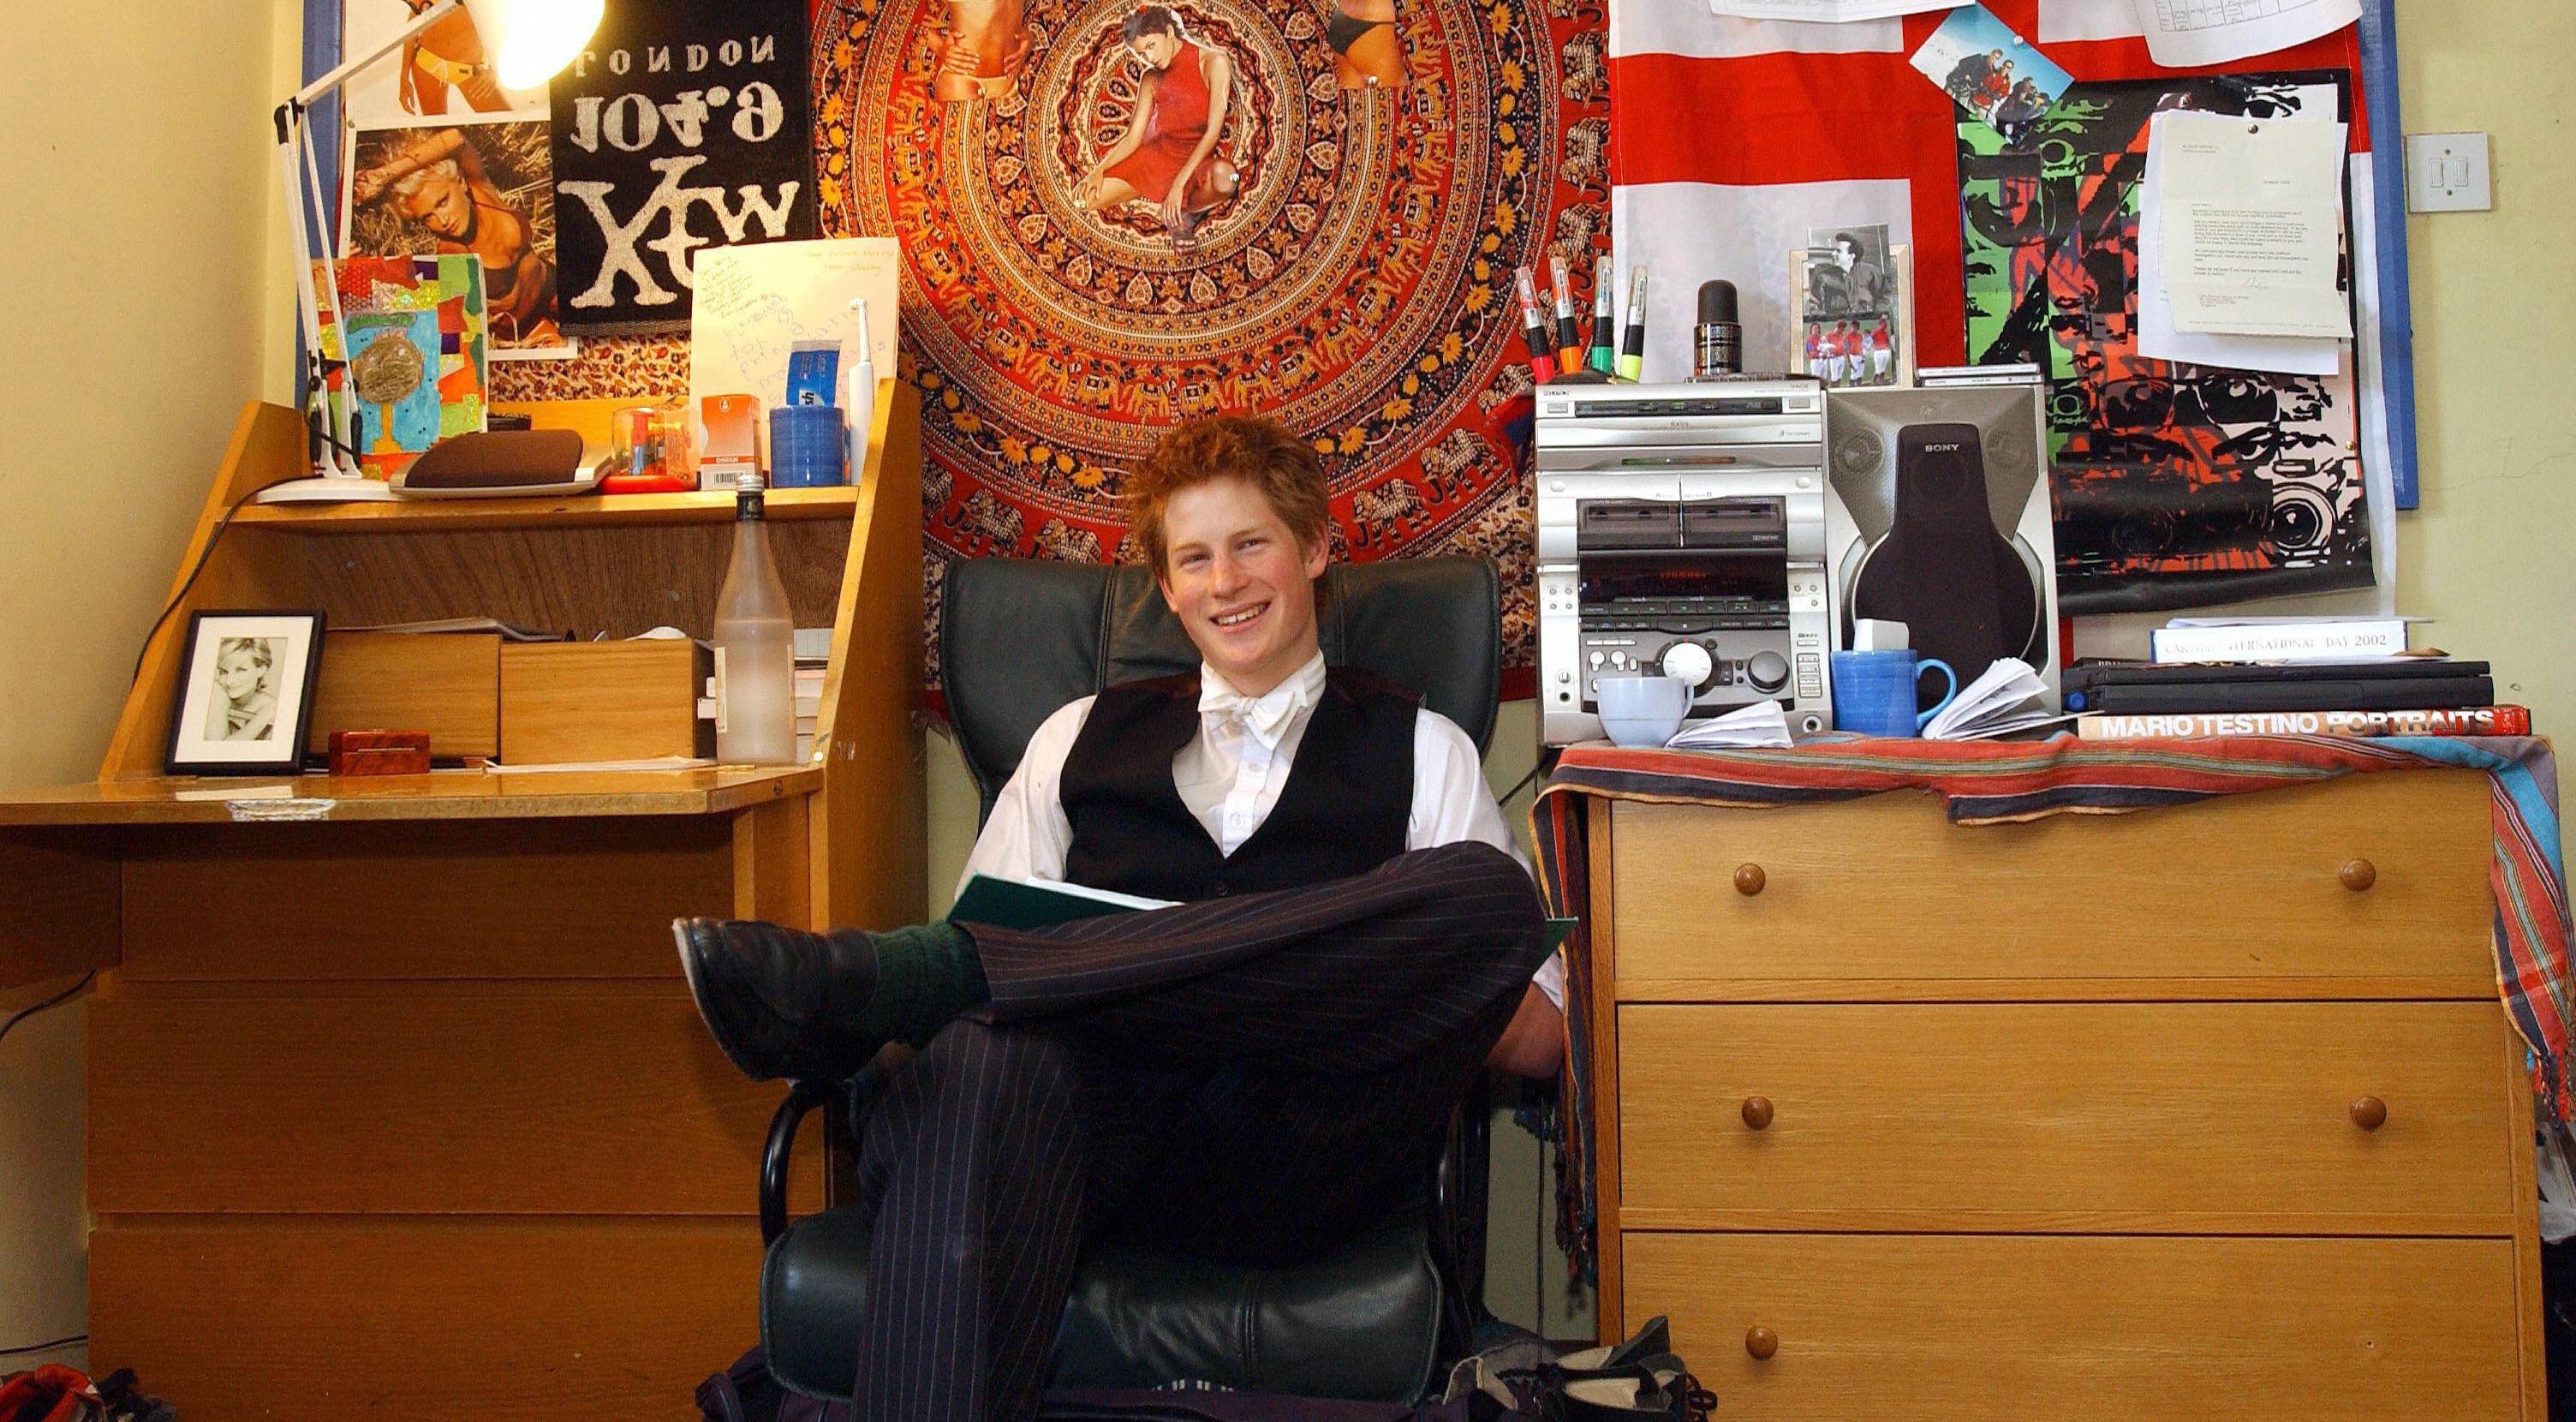 Prince Harry, the younger son of the Prince of Wales, sits 12 May 2003 in his room at Eton College. Within limits, students are allowed to decorate their room themselves.